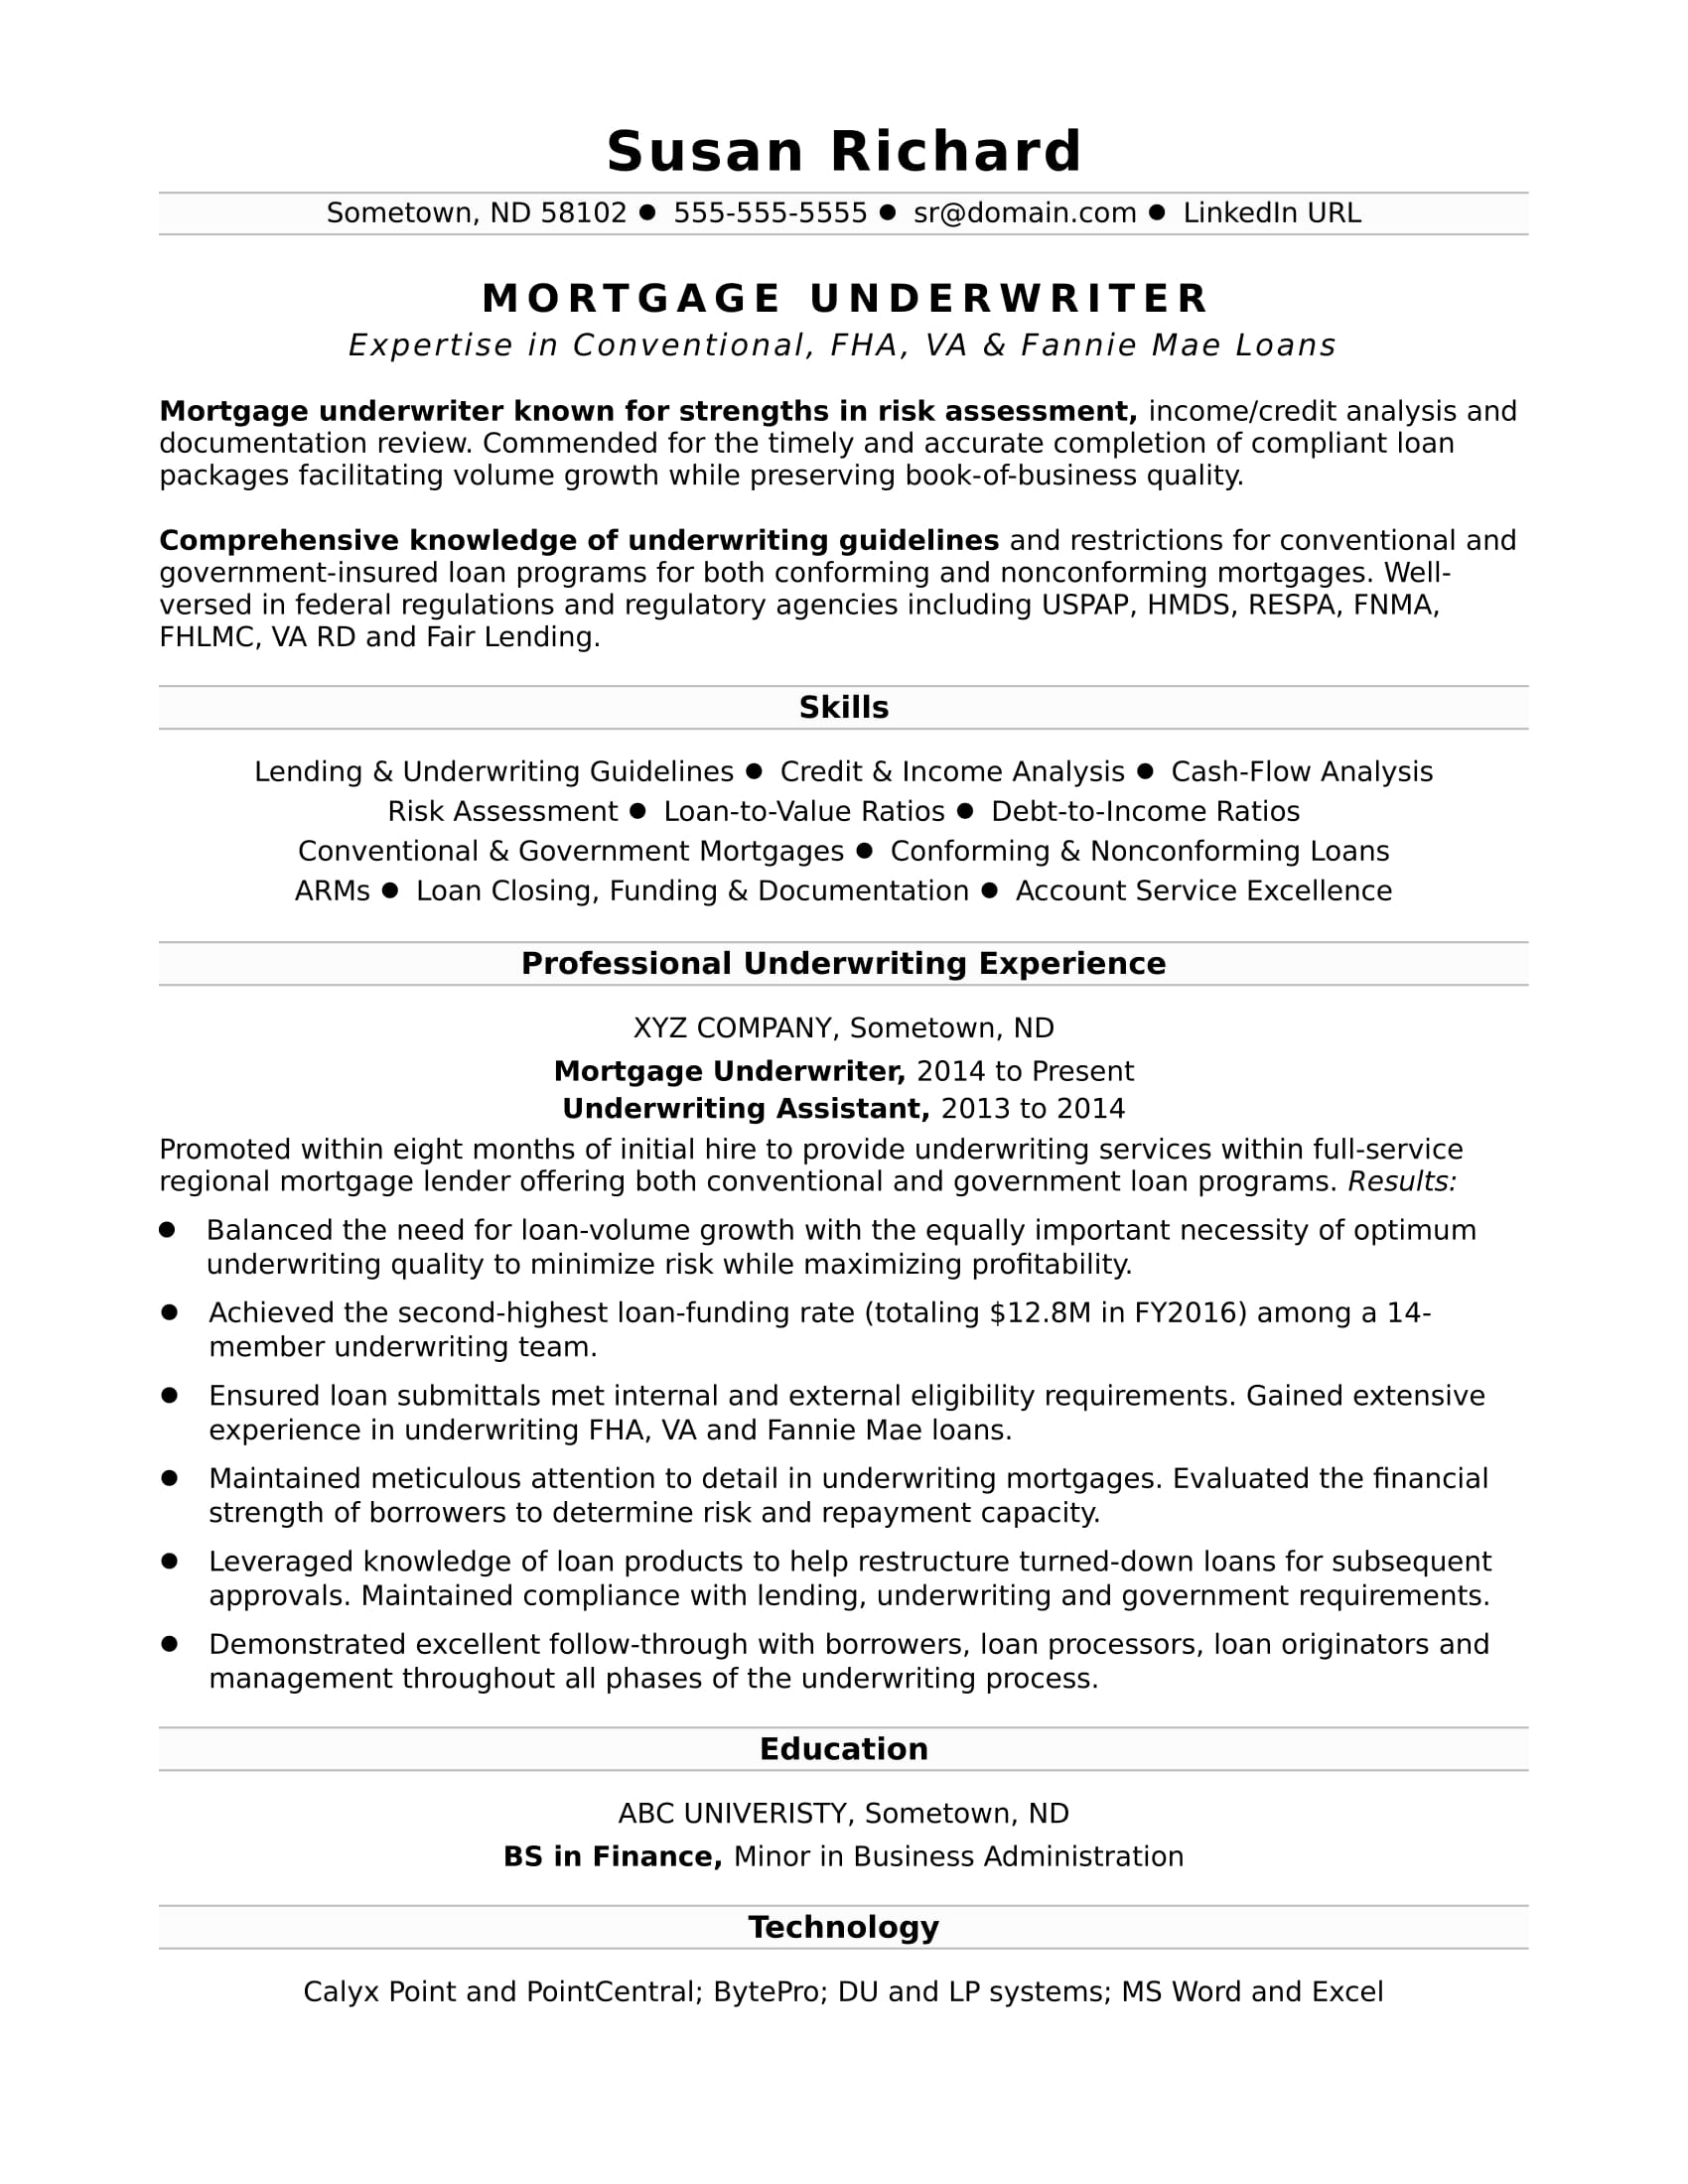 Resume Analysis Fascinating Mortgage Underwriter Resume Sample Monster